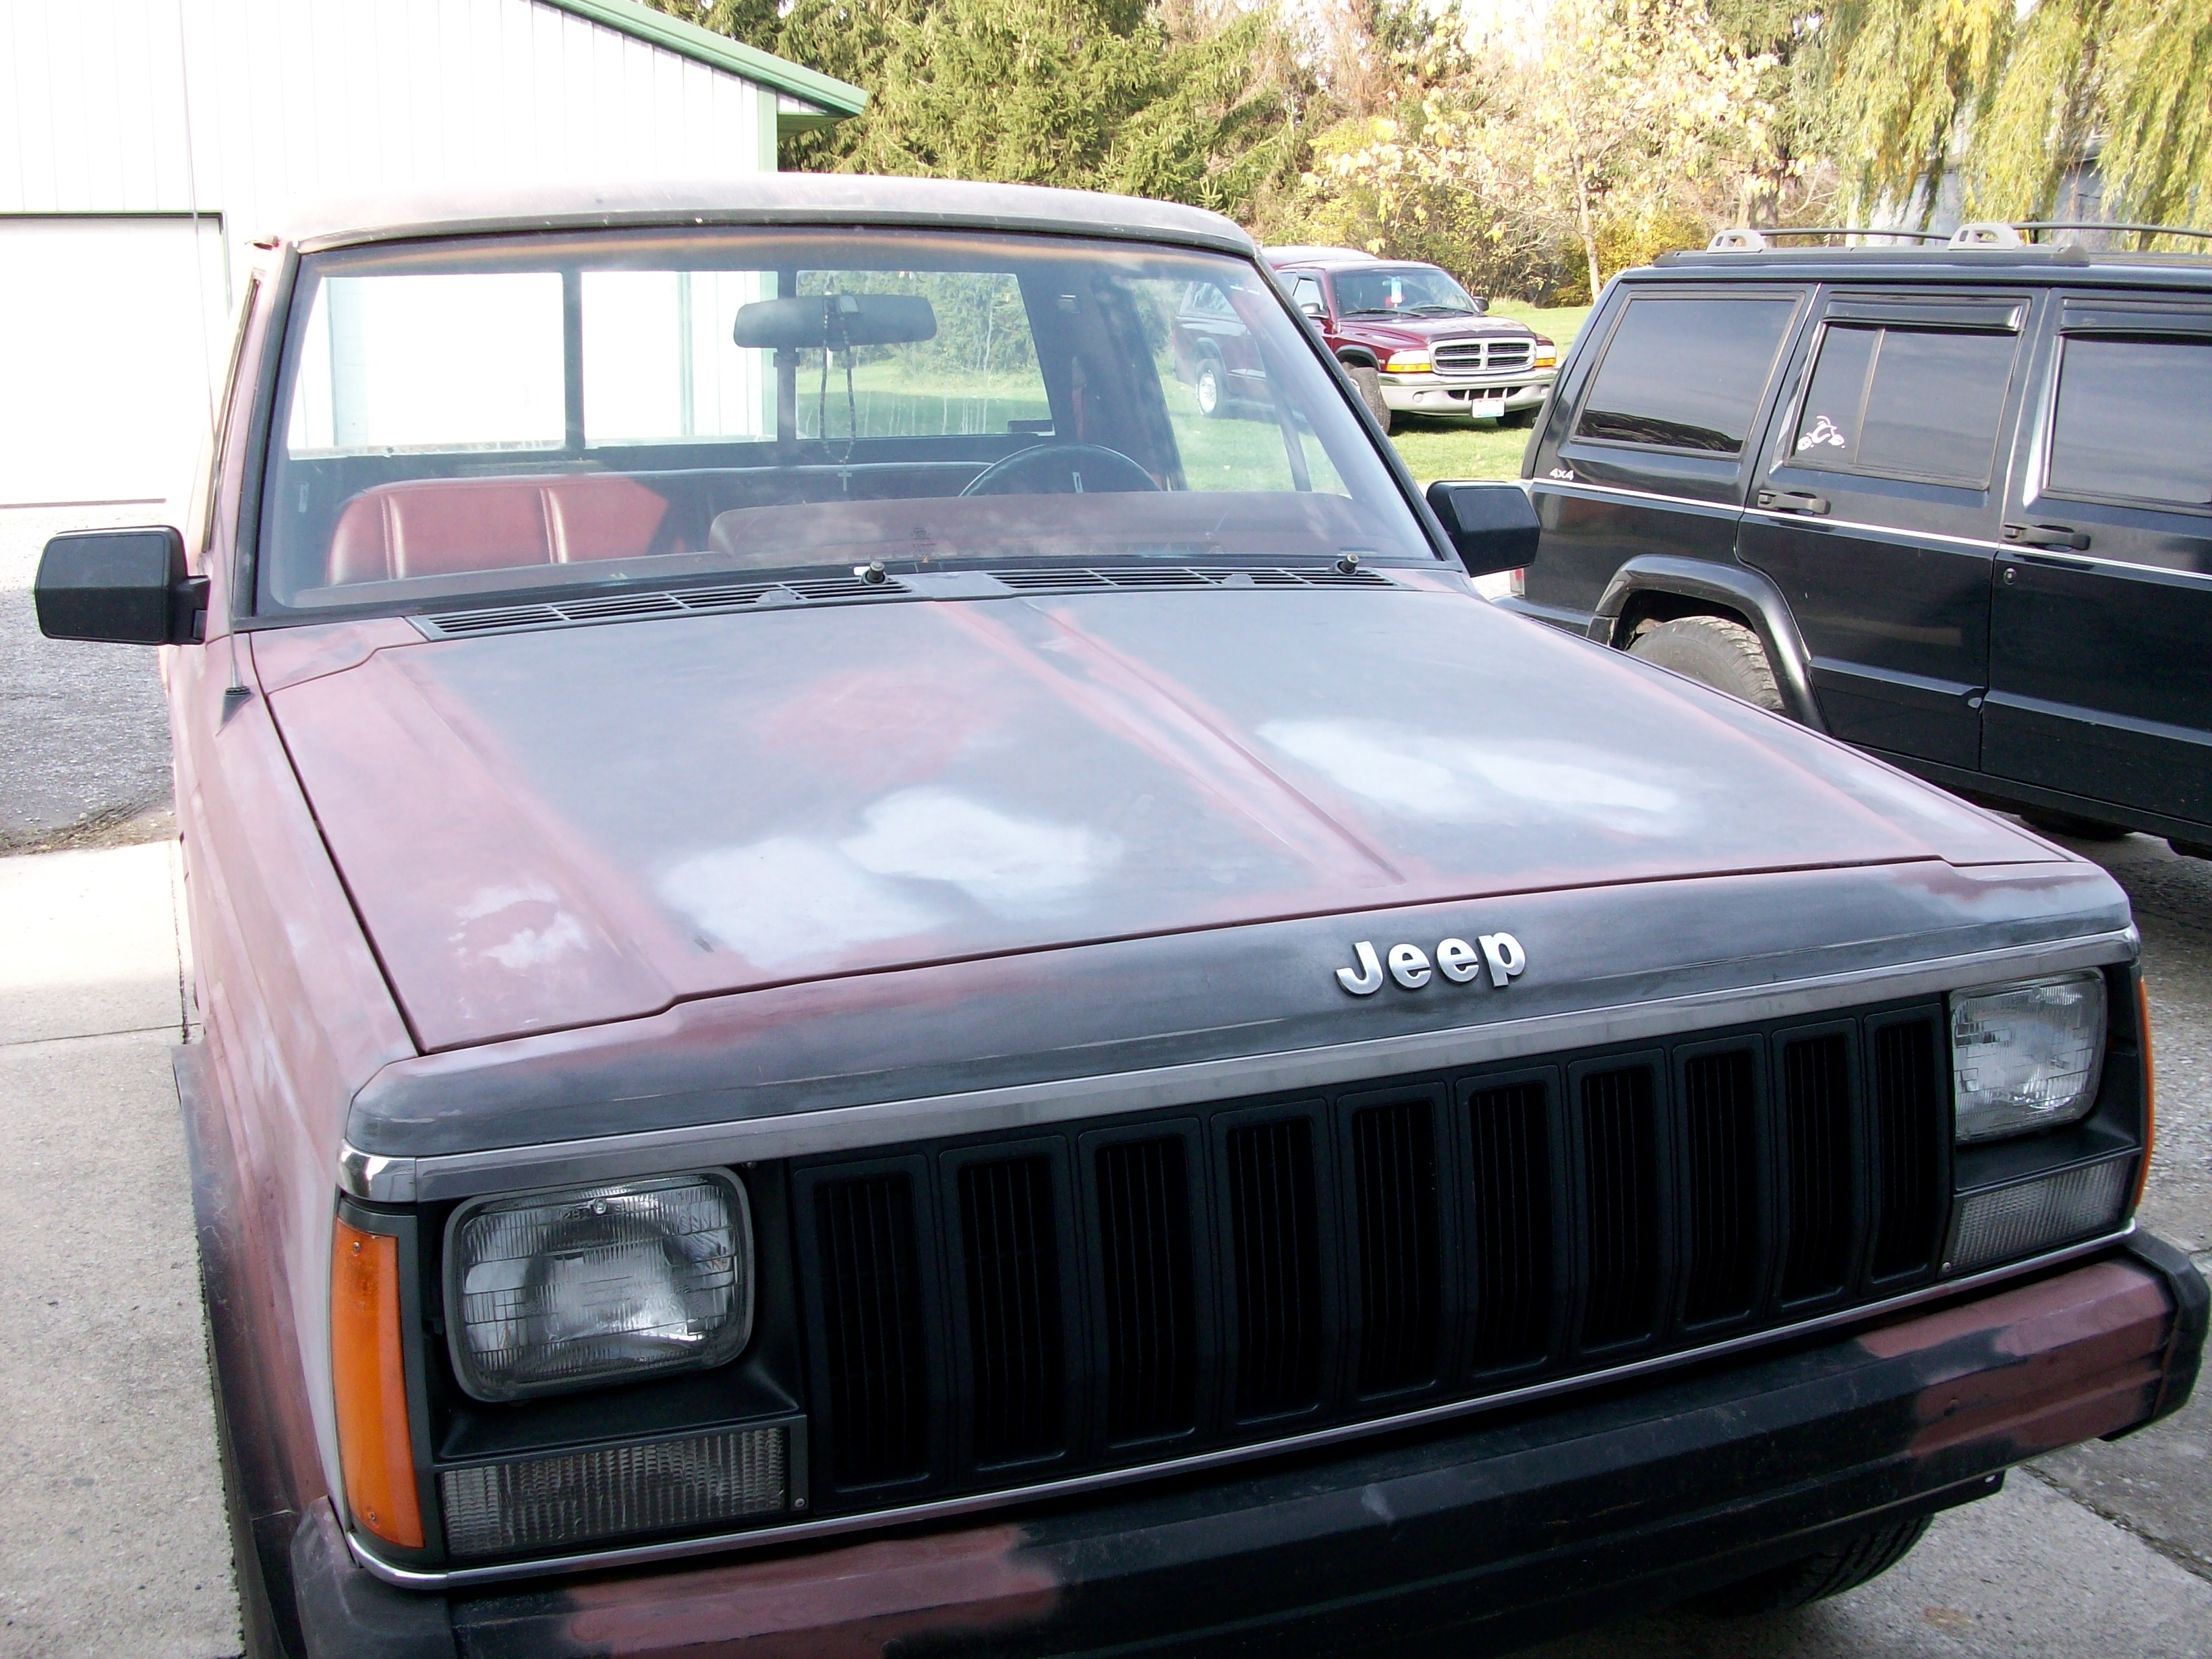 r zsmchld time sale my driver the daily being jeep comanche comments for